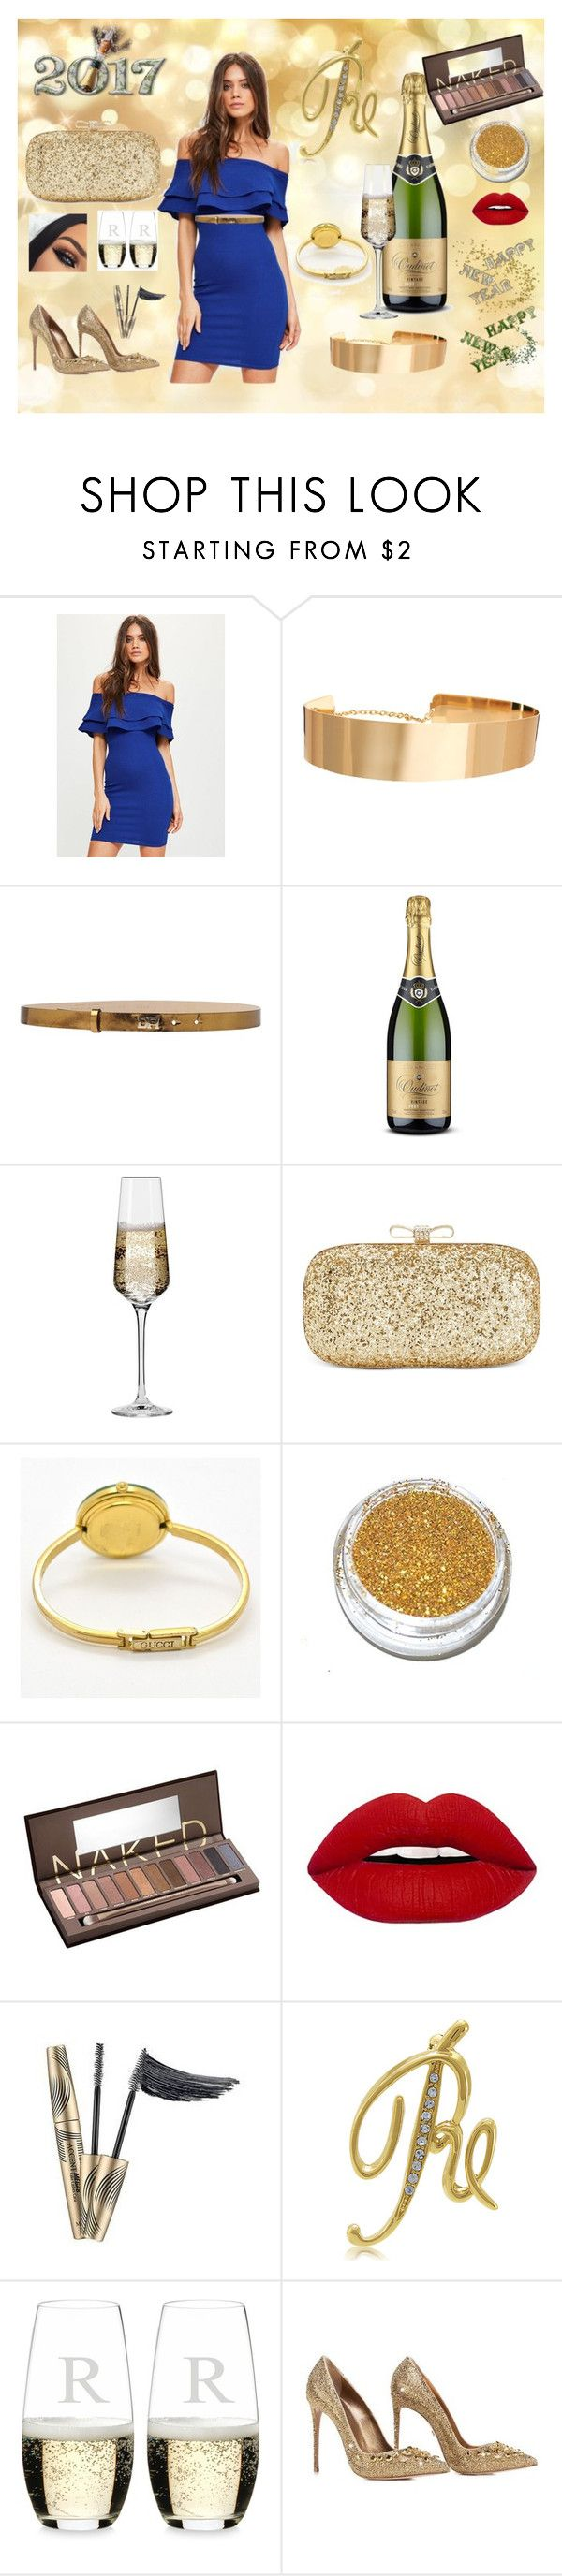 """""""Welcoming 2017...."""" by ritty18 on Polyvore featuring Missguided, ASOS, Daniele Alessandrini, Krosno, INC International Concepts, Gucci, Urban Decay, BERRICLE, Riedel and Le Silla"""